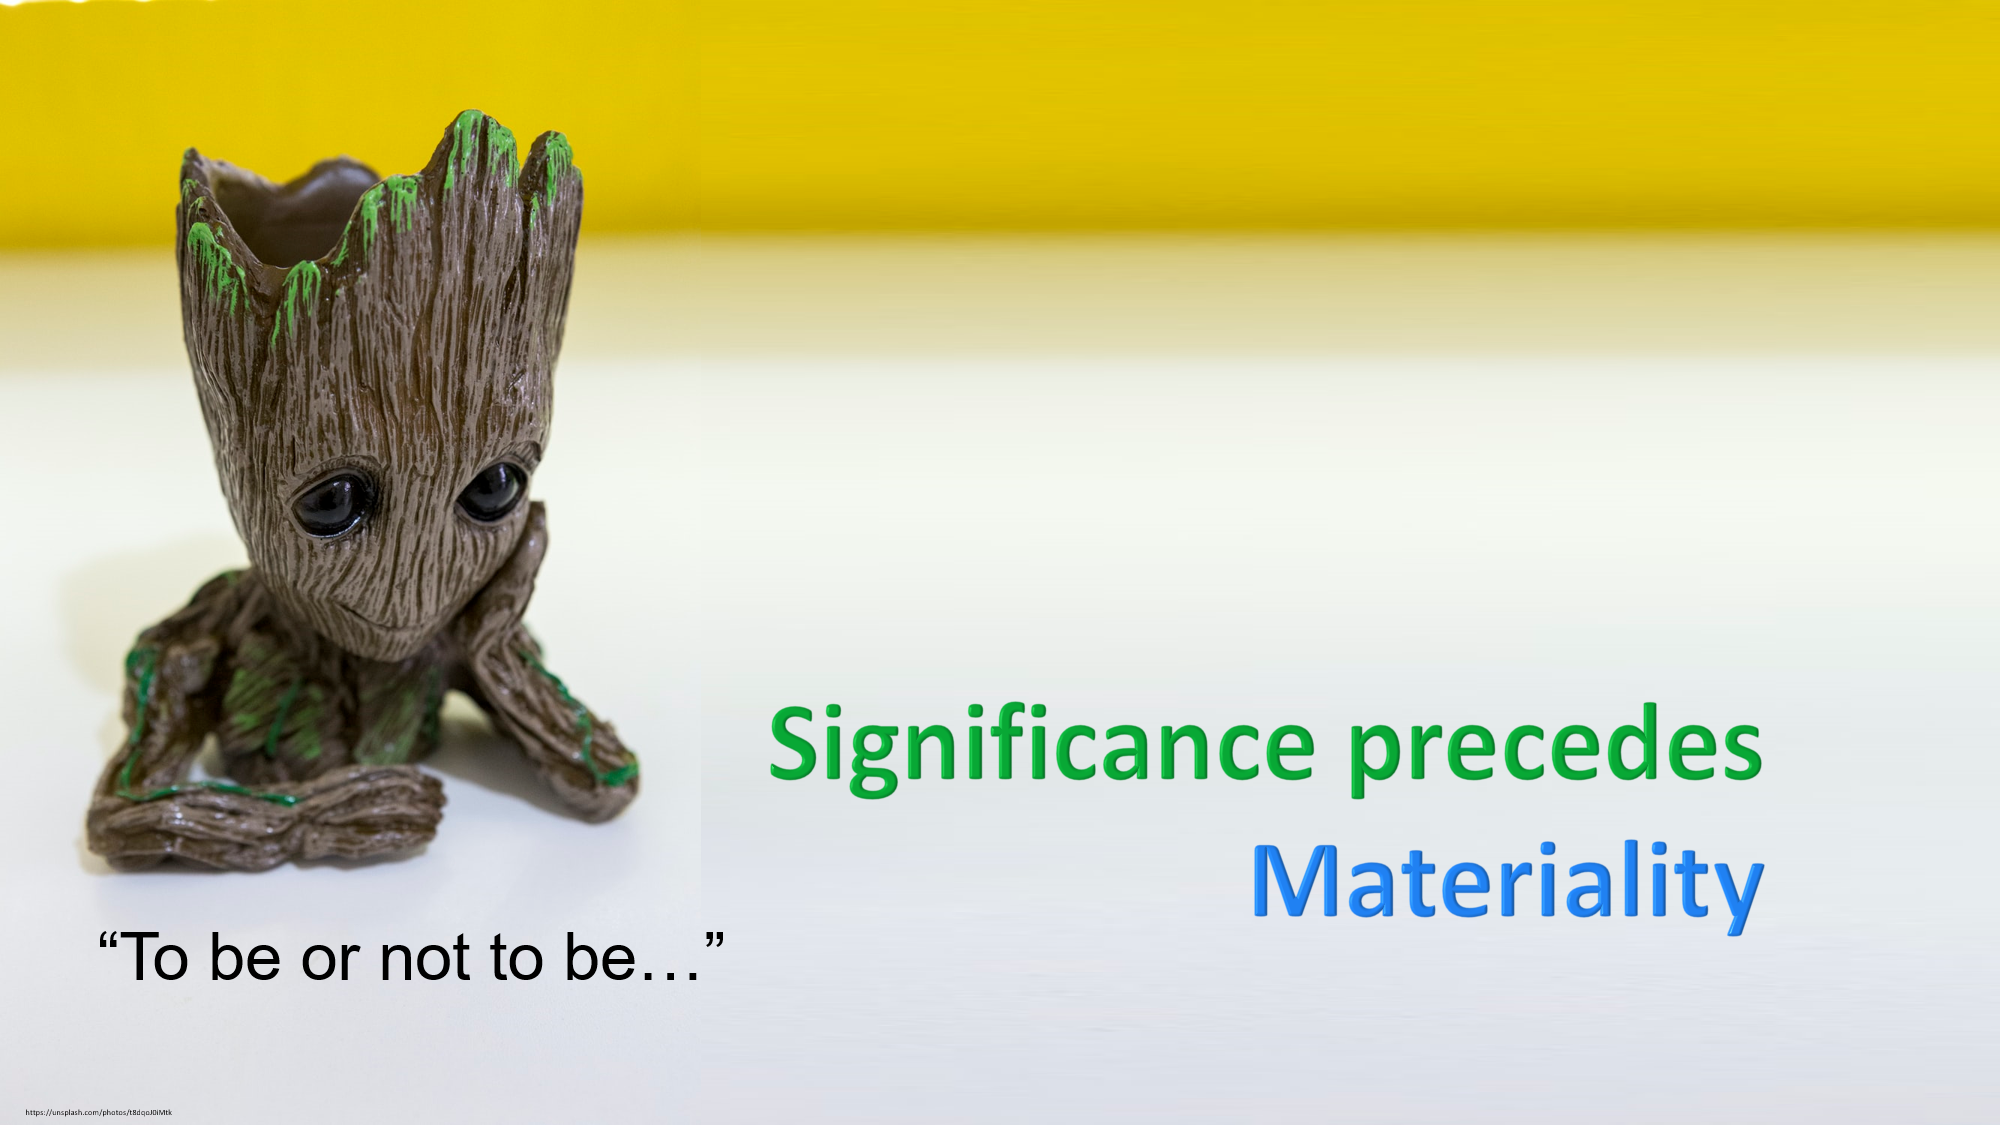 Materiality and Significance